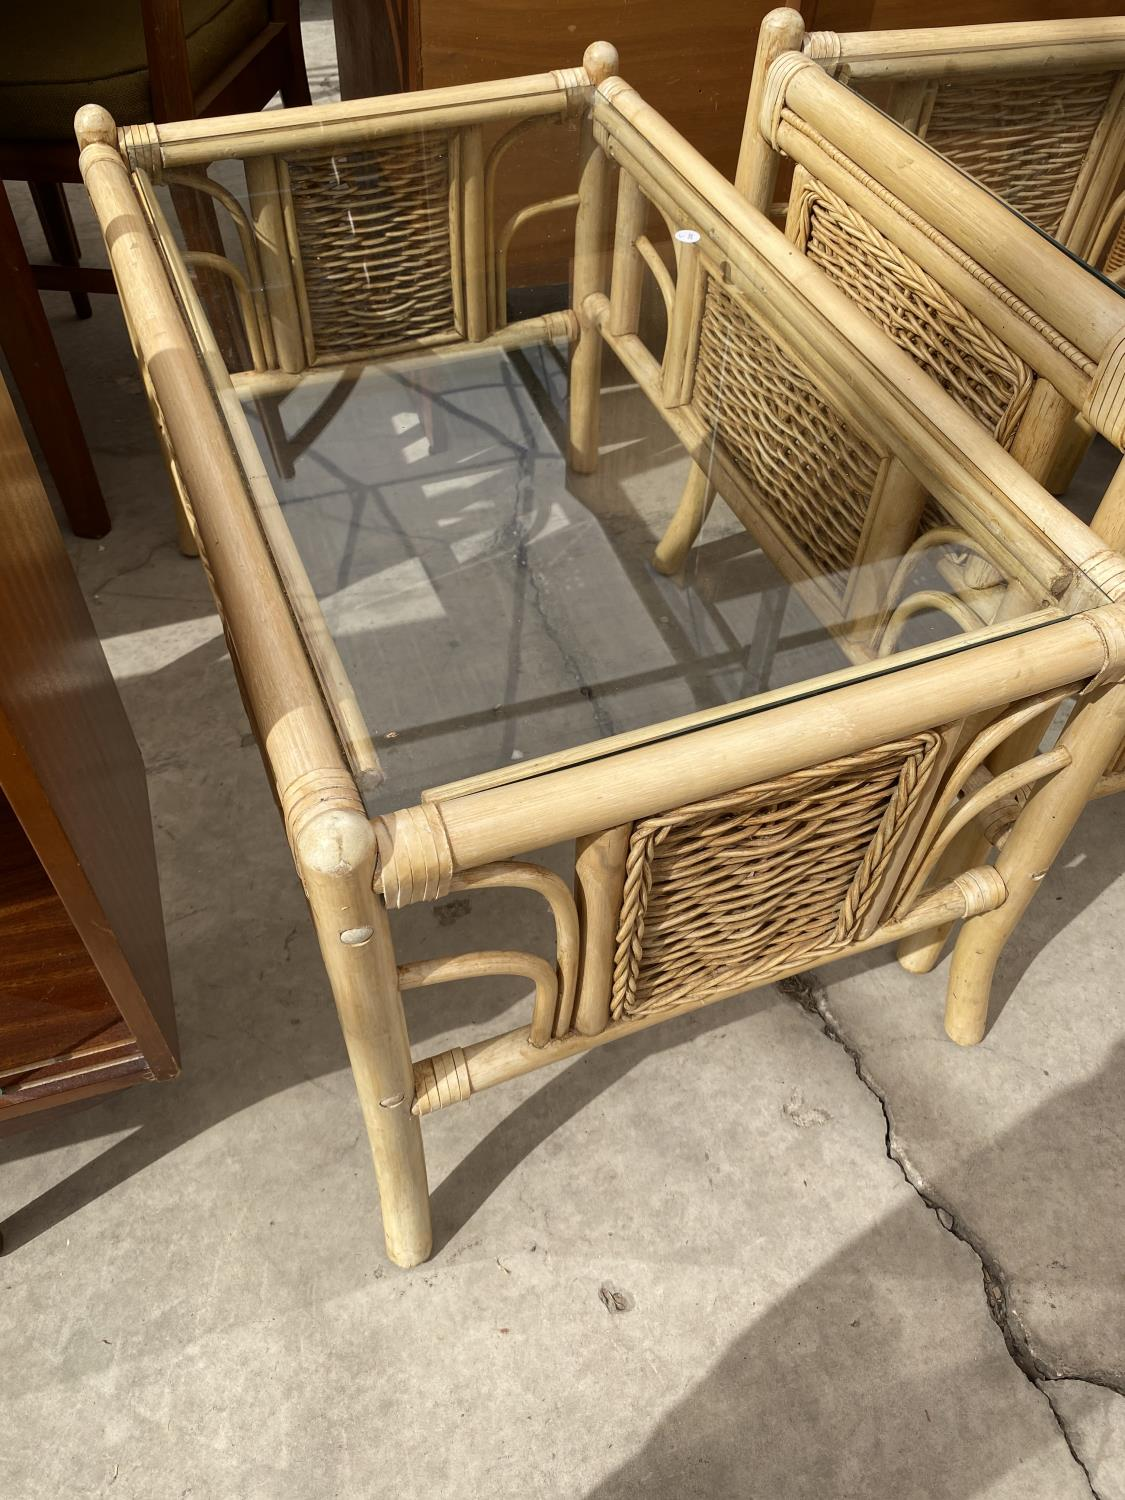 TWO BAMBOO AND WICKER COFFEE TABLES WITH GLASS TOPS - Image 3 of 3